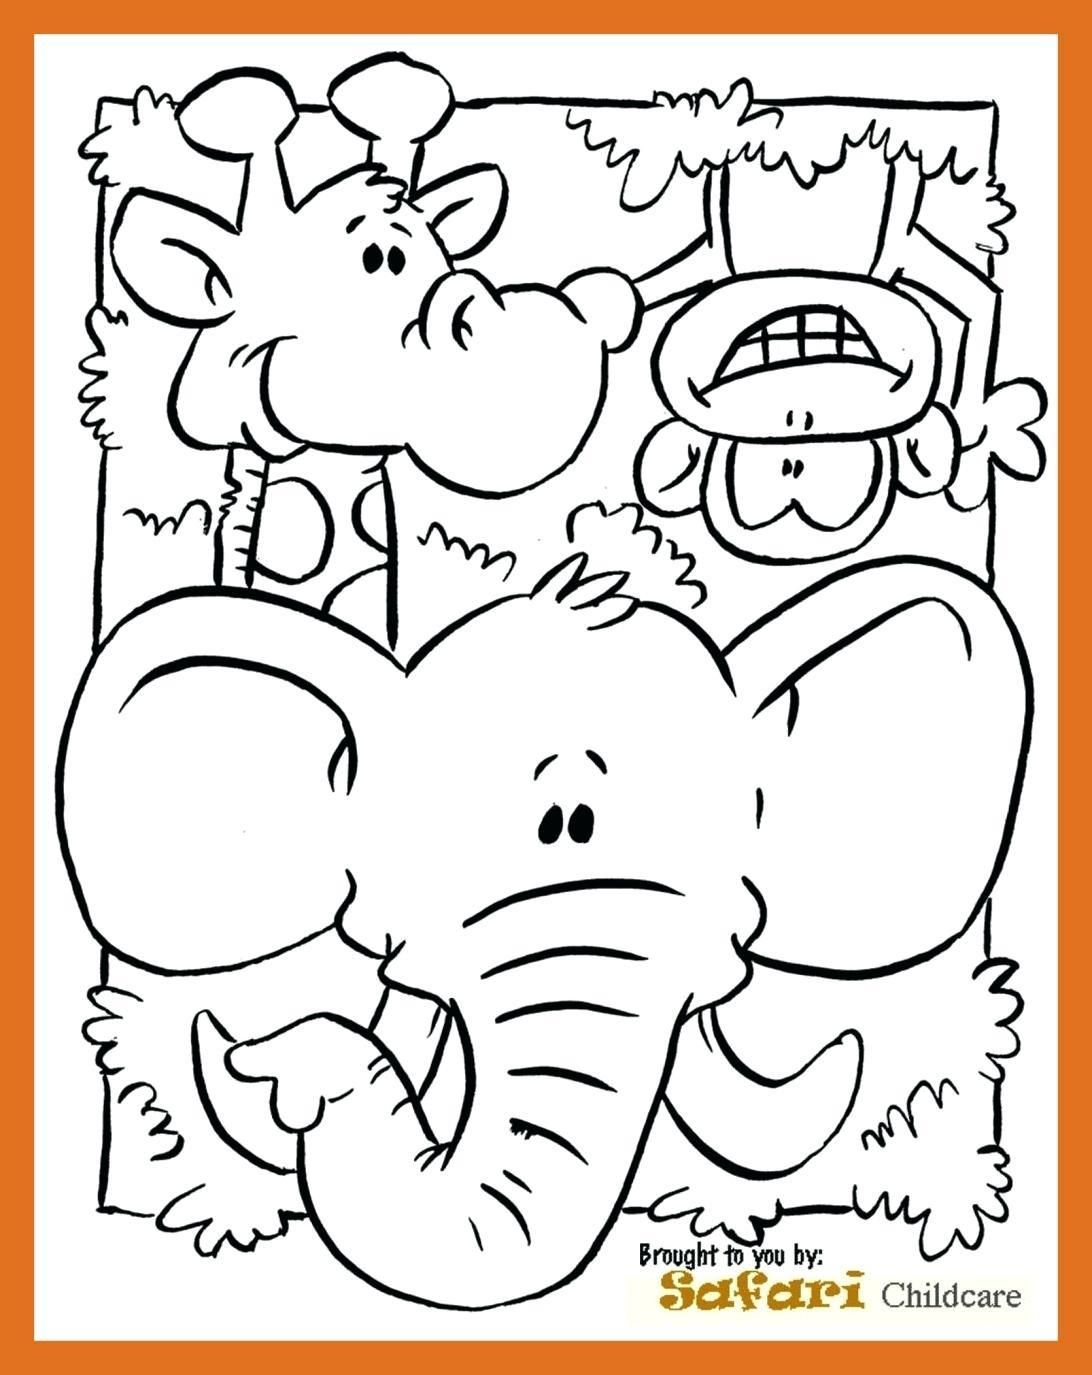 Letter Tracing Sheets For Kindergarten Zoo Animal Coloring Pages Jungle Coloring Pages Zoo Coloring Pages [ 1375 x 1092 Pixel ]